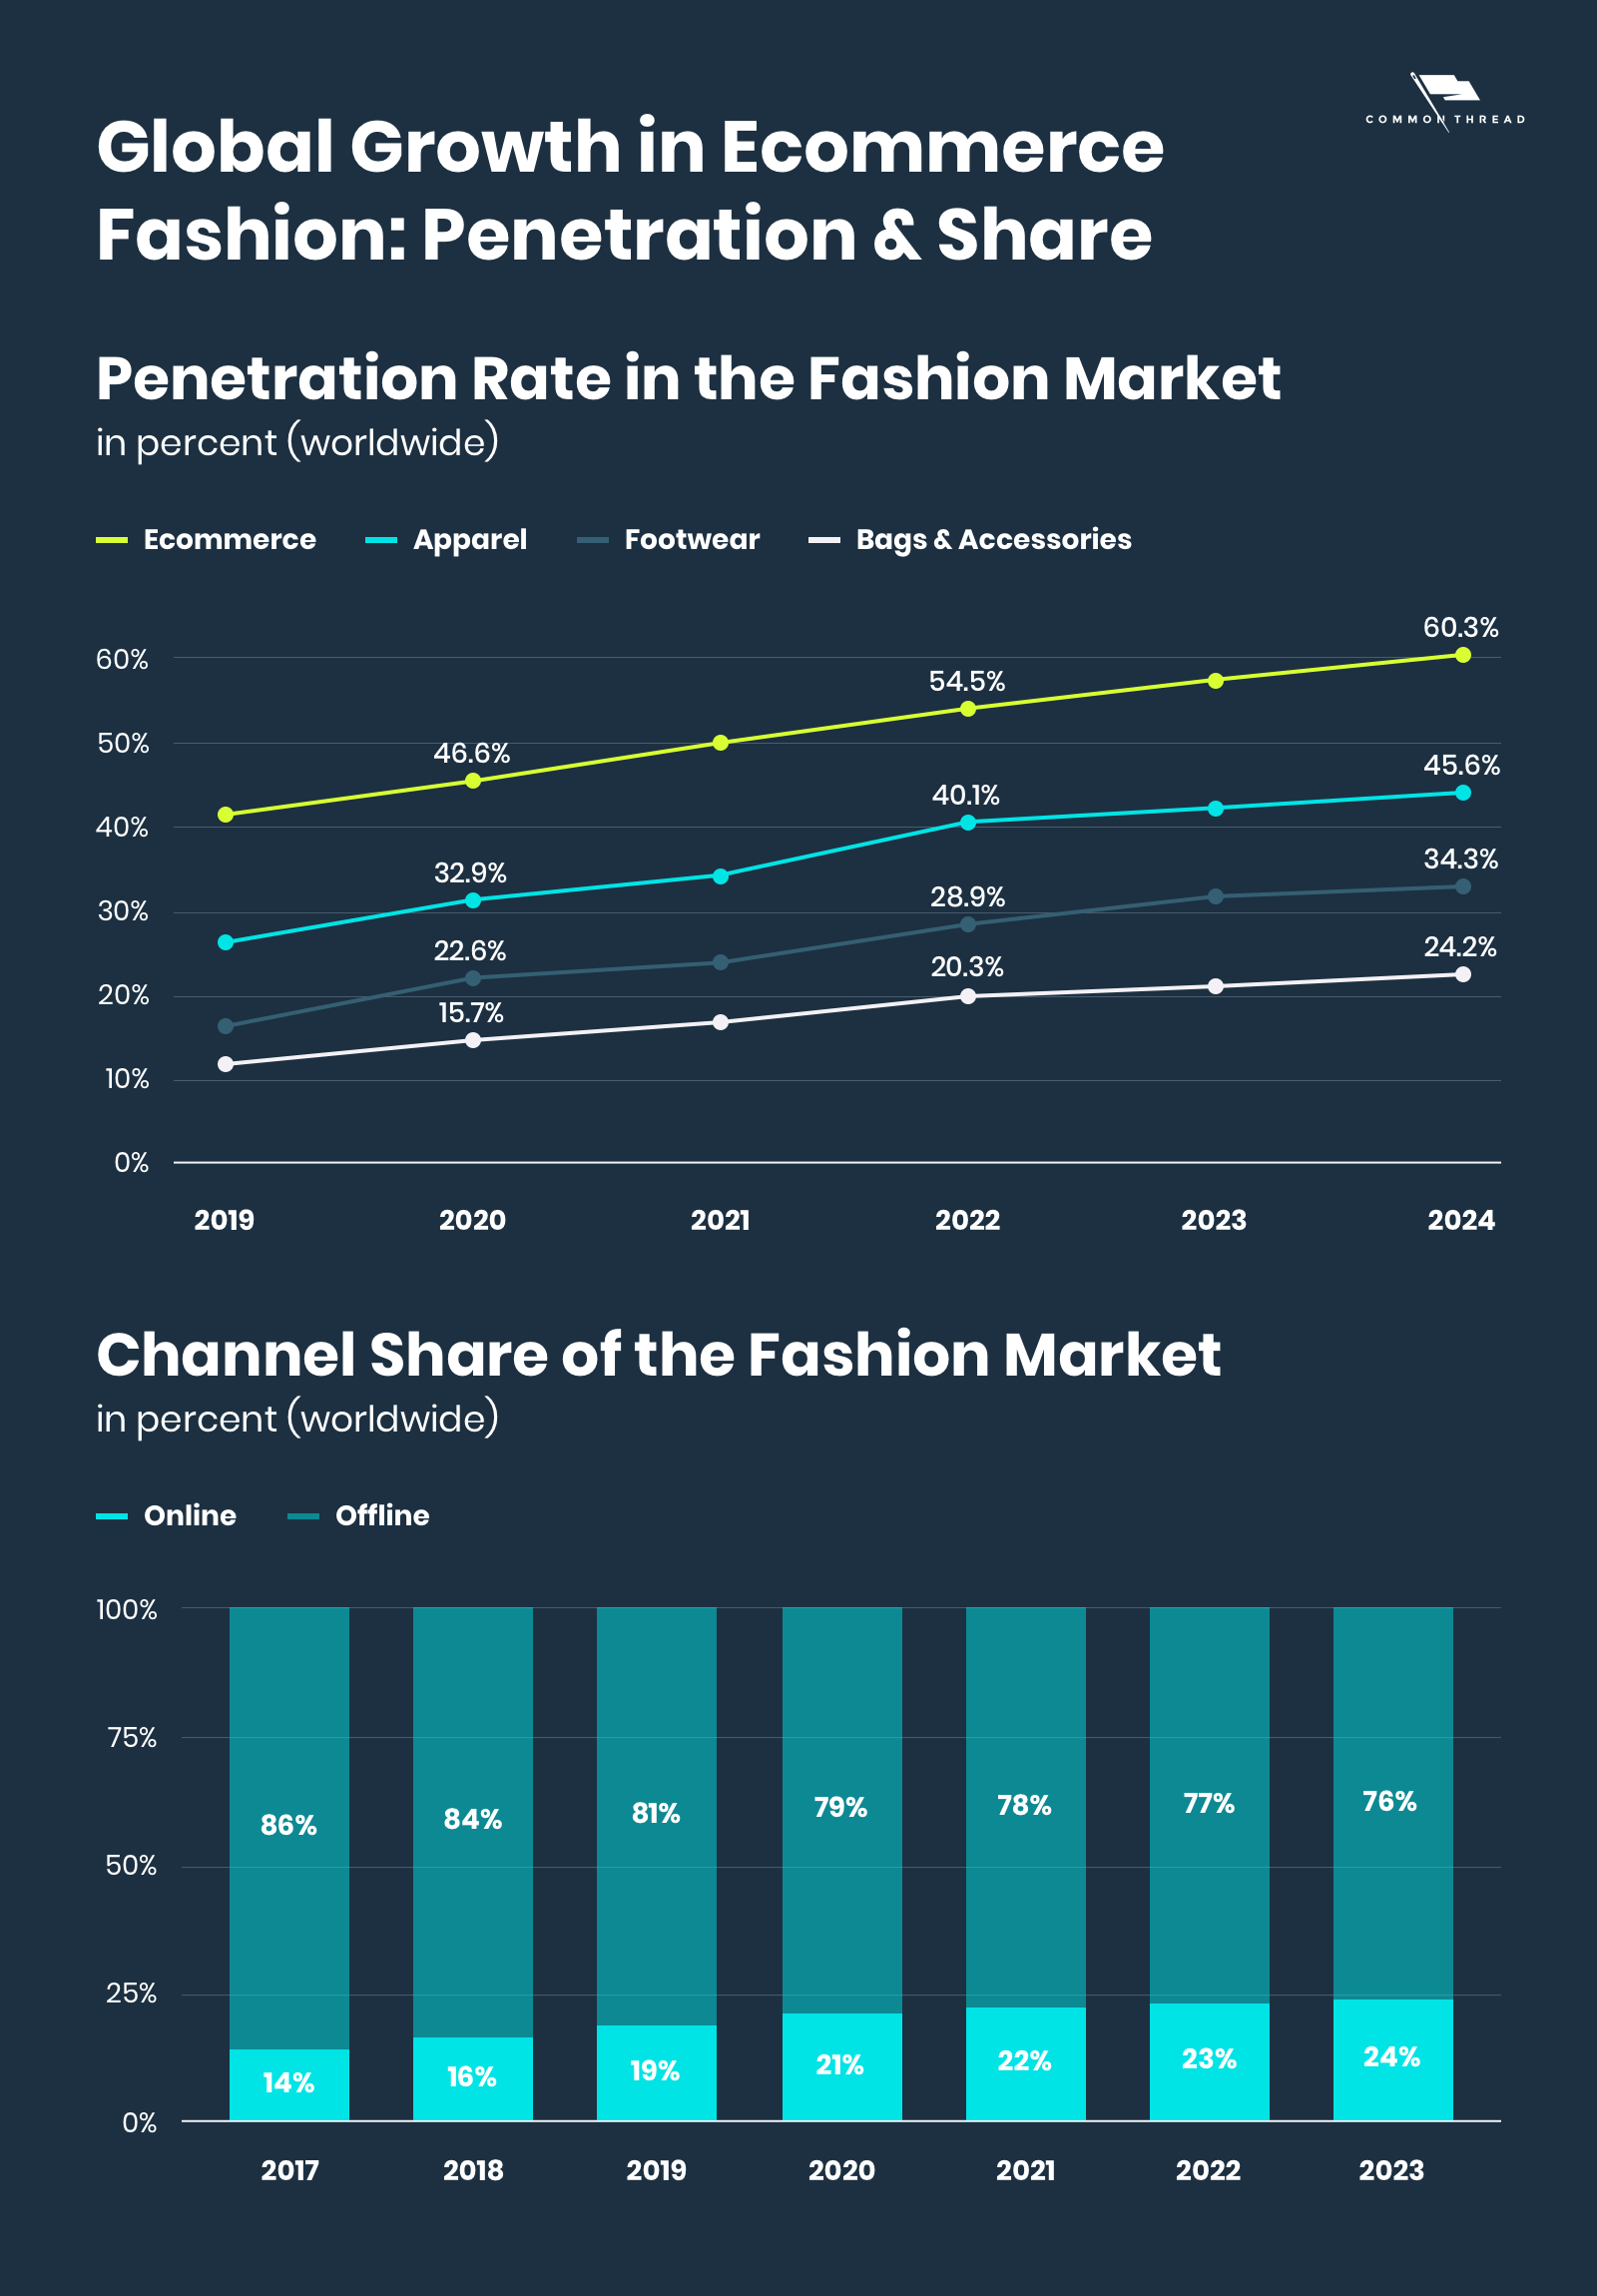 Global Growth in Ecommerce Fashion - Penetration & Channel Share